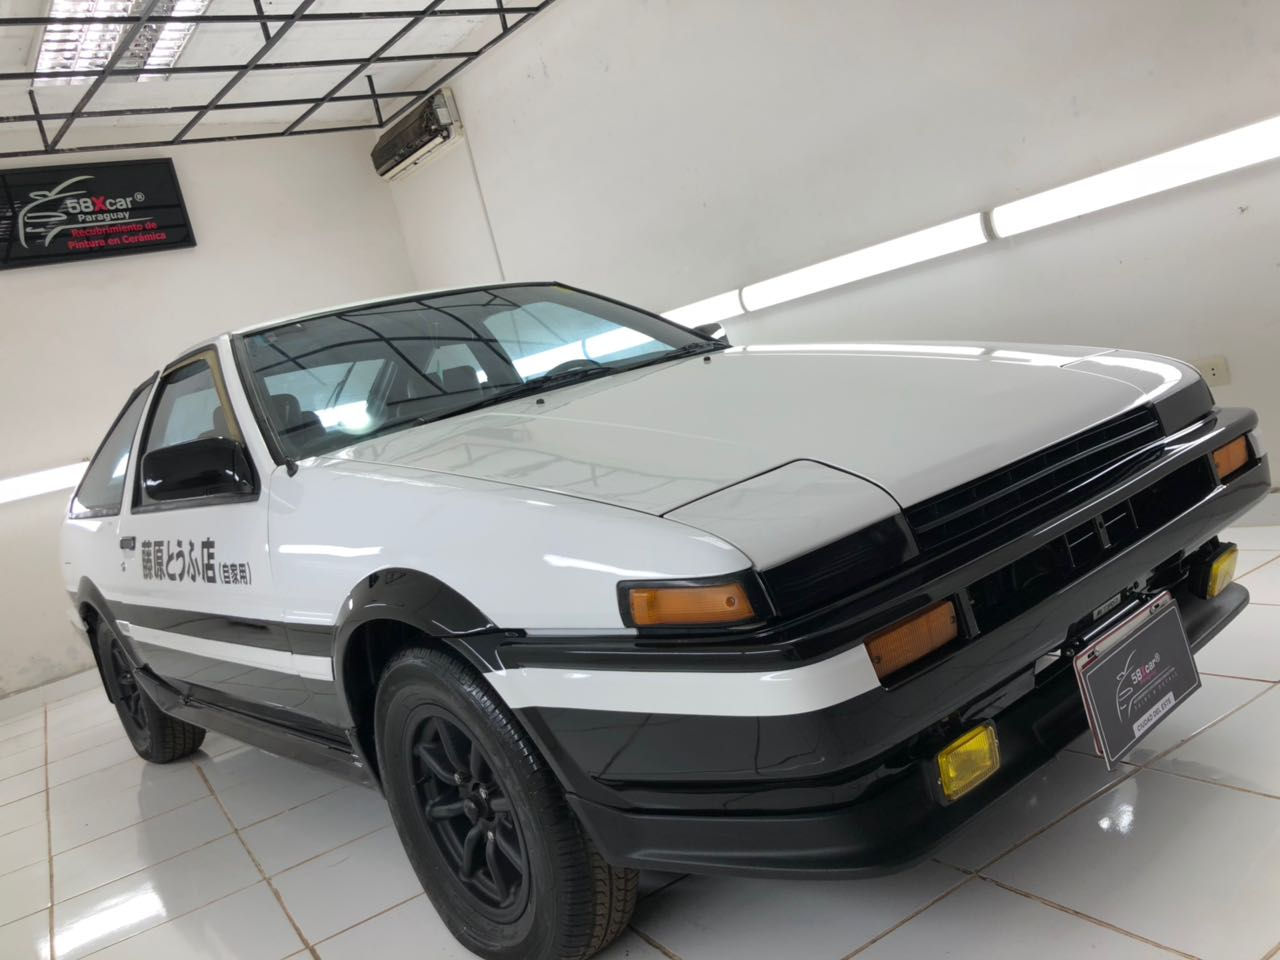 [Image: AEU86 AE86 - Hello, from Paraguay]